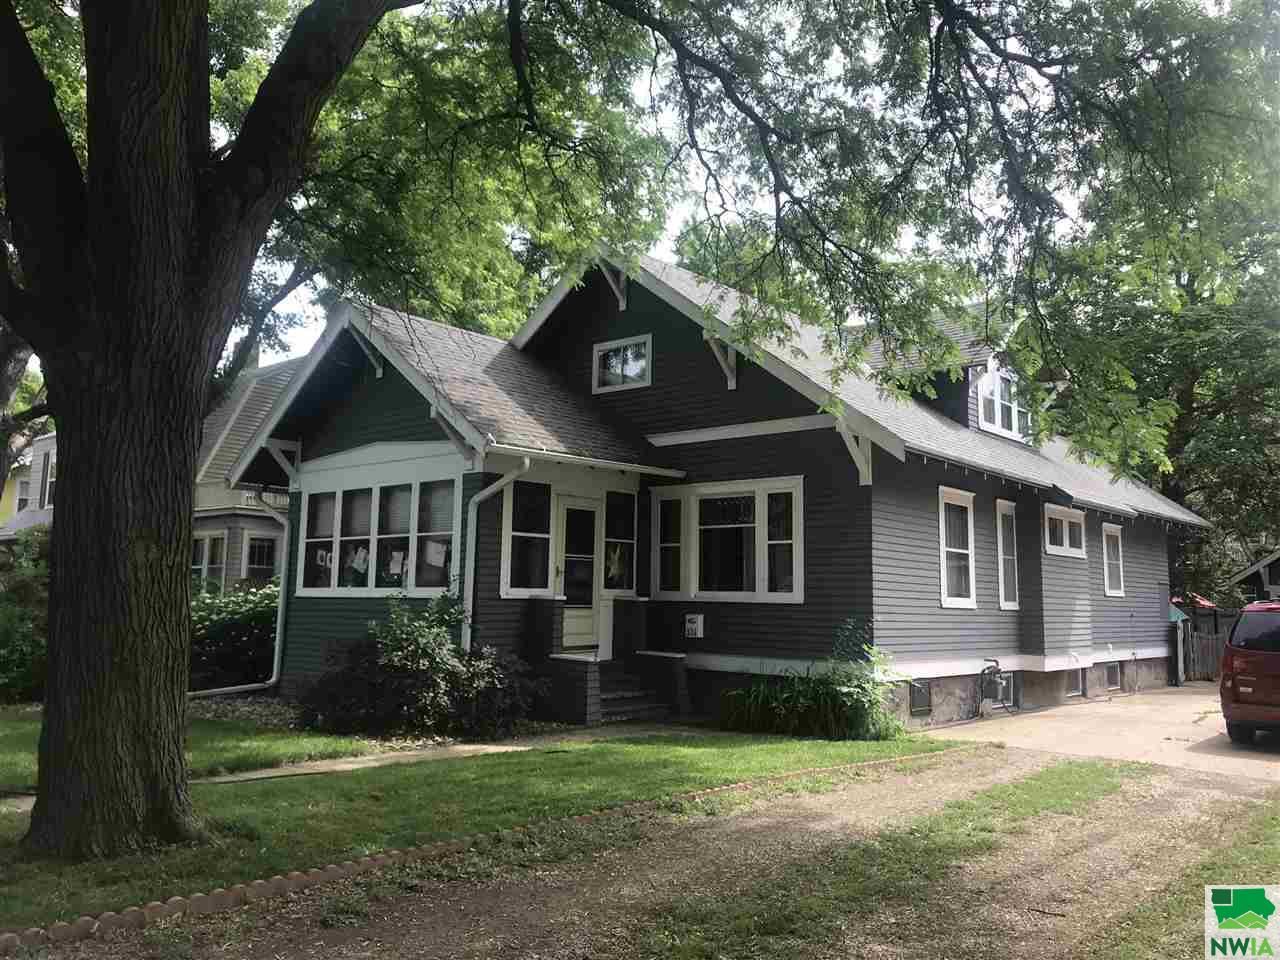 Property for sale at 326 S University, Vermillion,  SD 57069